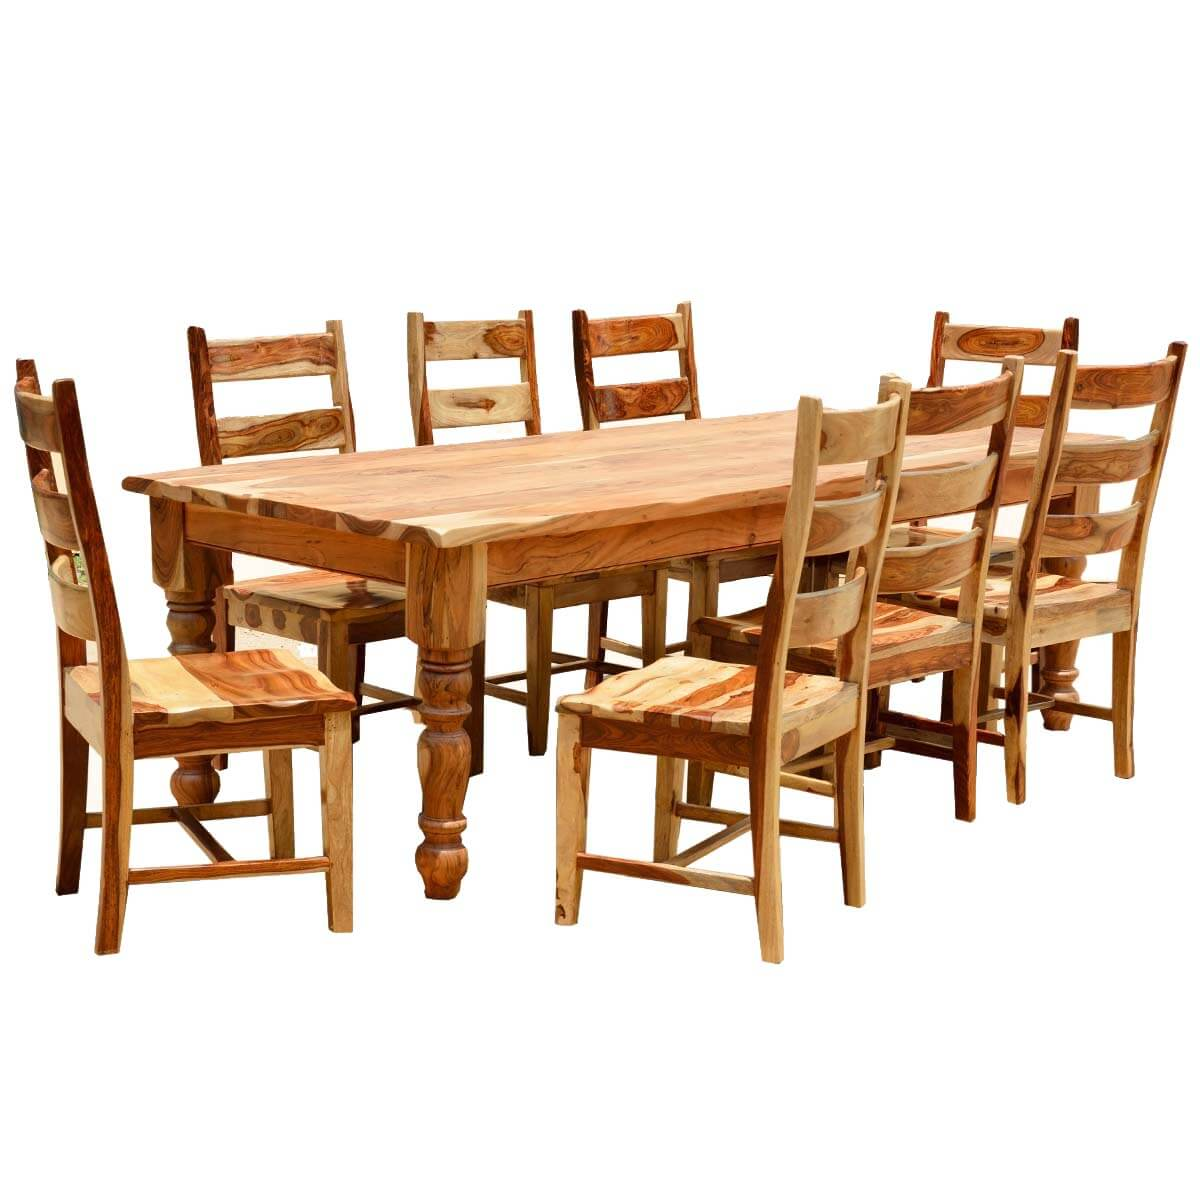 Rdrtac43 Rustic Dining Room Table And Chairs Wtsenates